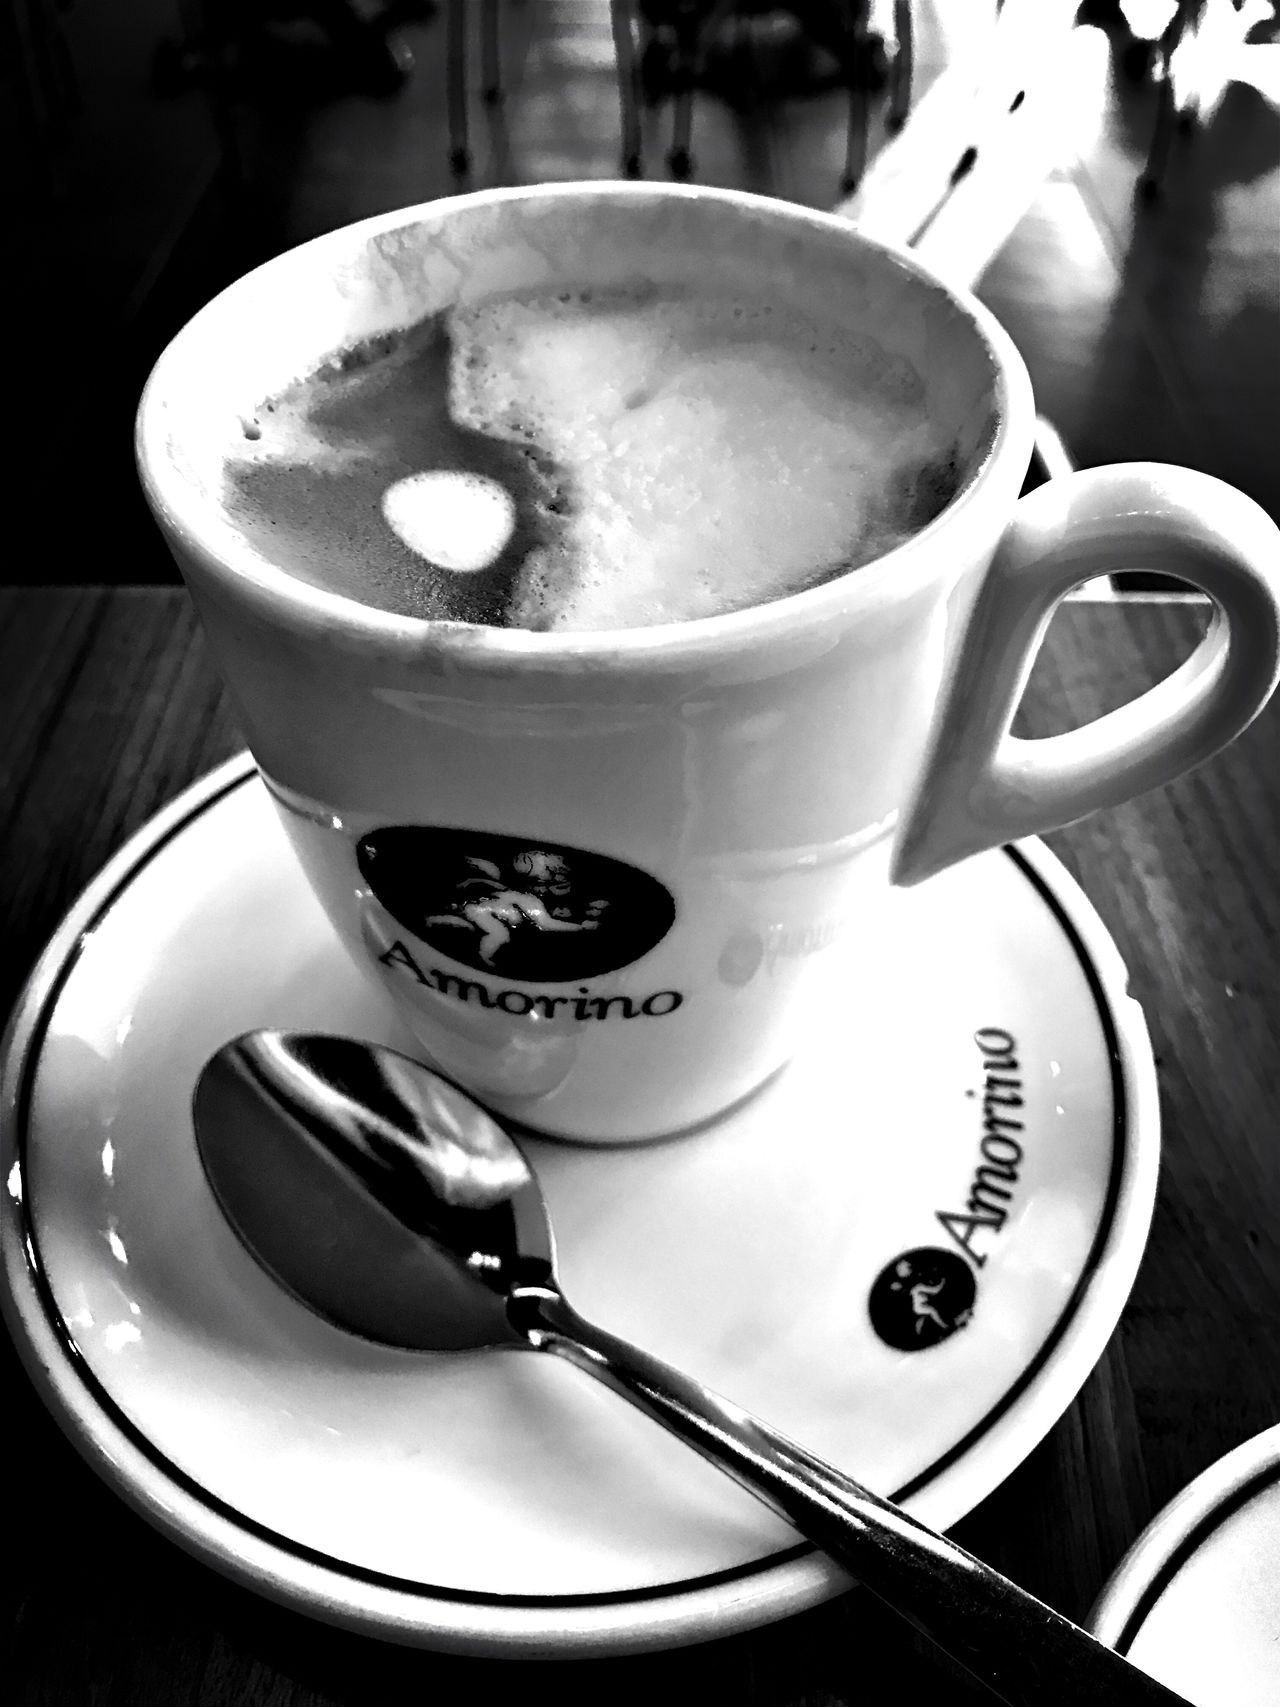 Coffee - Drink Coffee Cup Food And Drink Table Drink Spoon Close-up Refreshment No People Freshness Plate Indoors  Frothy Drink Day